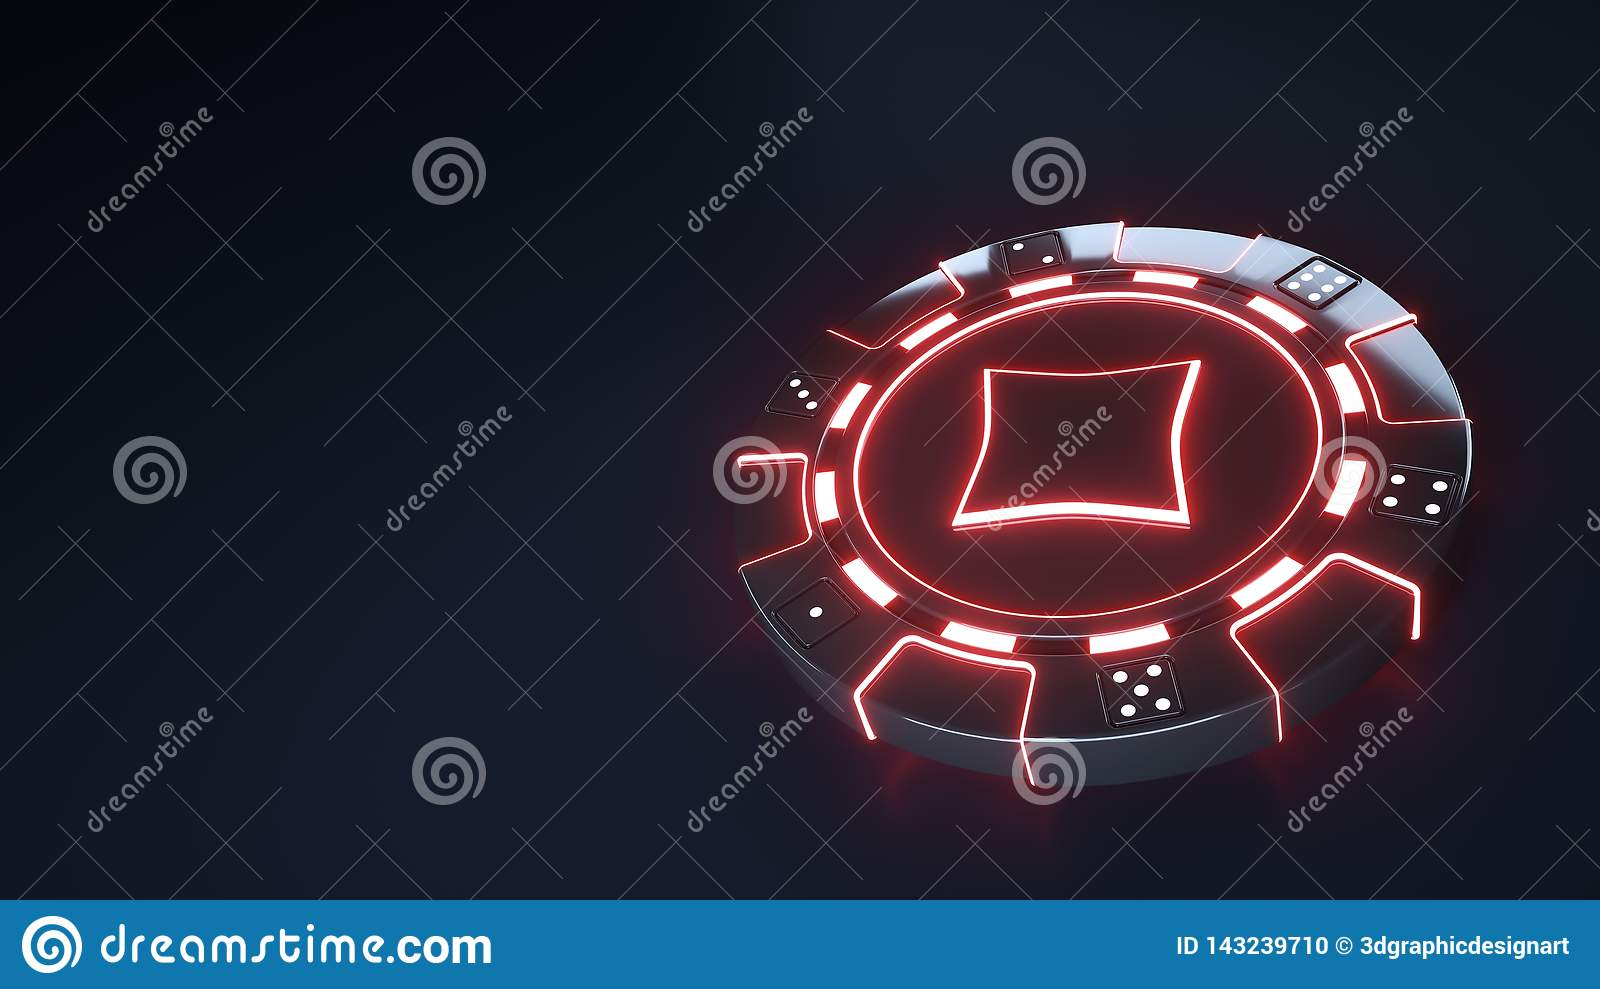 Casino Chip diamonds Concept with glowing neon red lights and Dice dots isolated on the black background - 3D Illustration